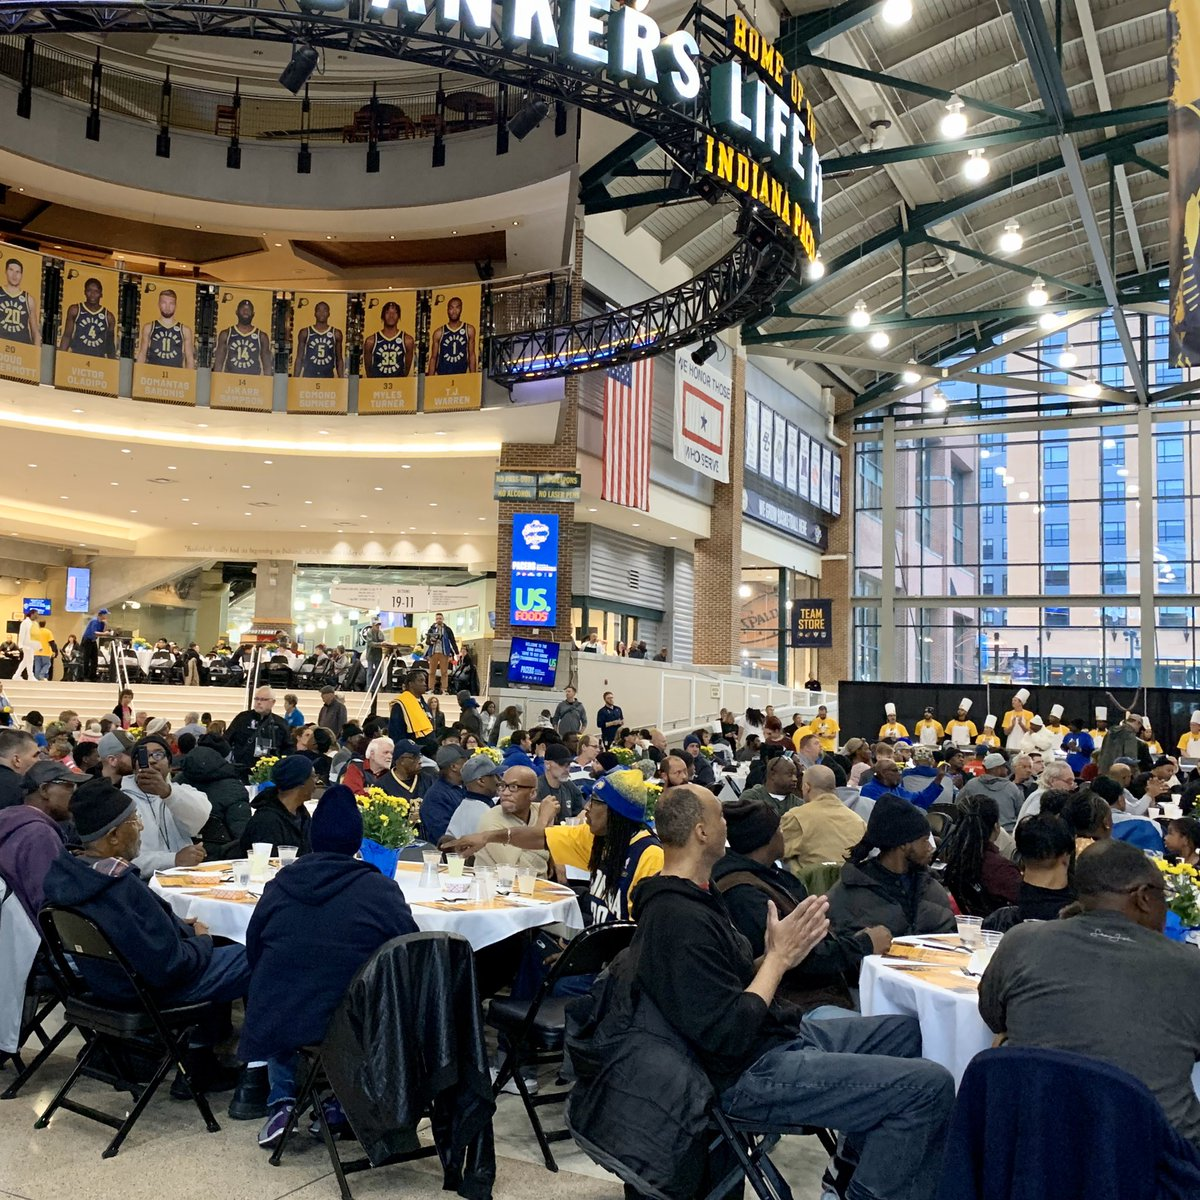 We're serving it up at the annual Come to Our House Thanksgiving Dinner presented by @USFoods and hosted by @VicOladipo, @dougmcdermott & the @PacersFdn 🤗  #SeasonOfGiving x @PacersCares – at Bankers Life Fieldhouse